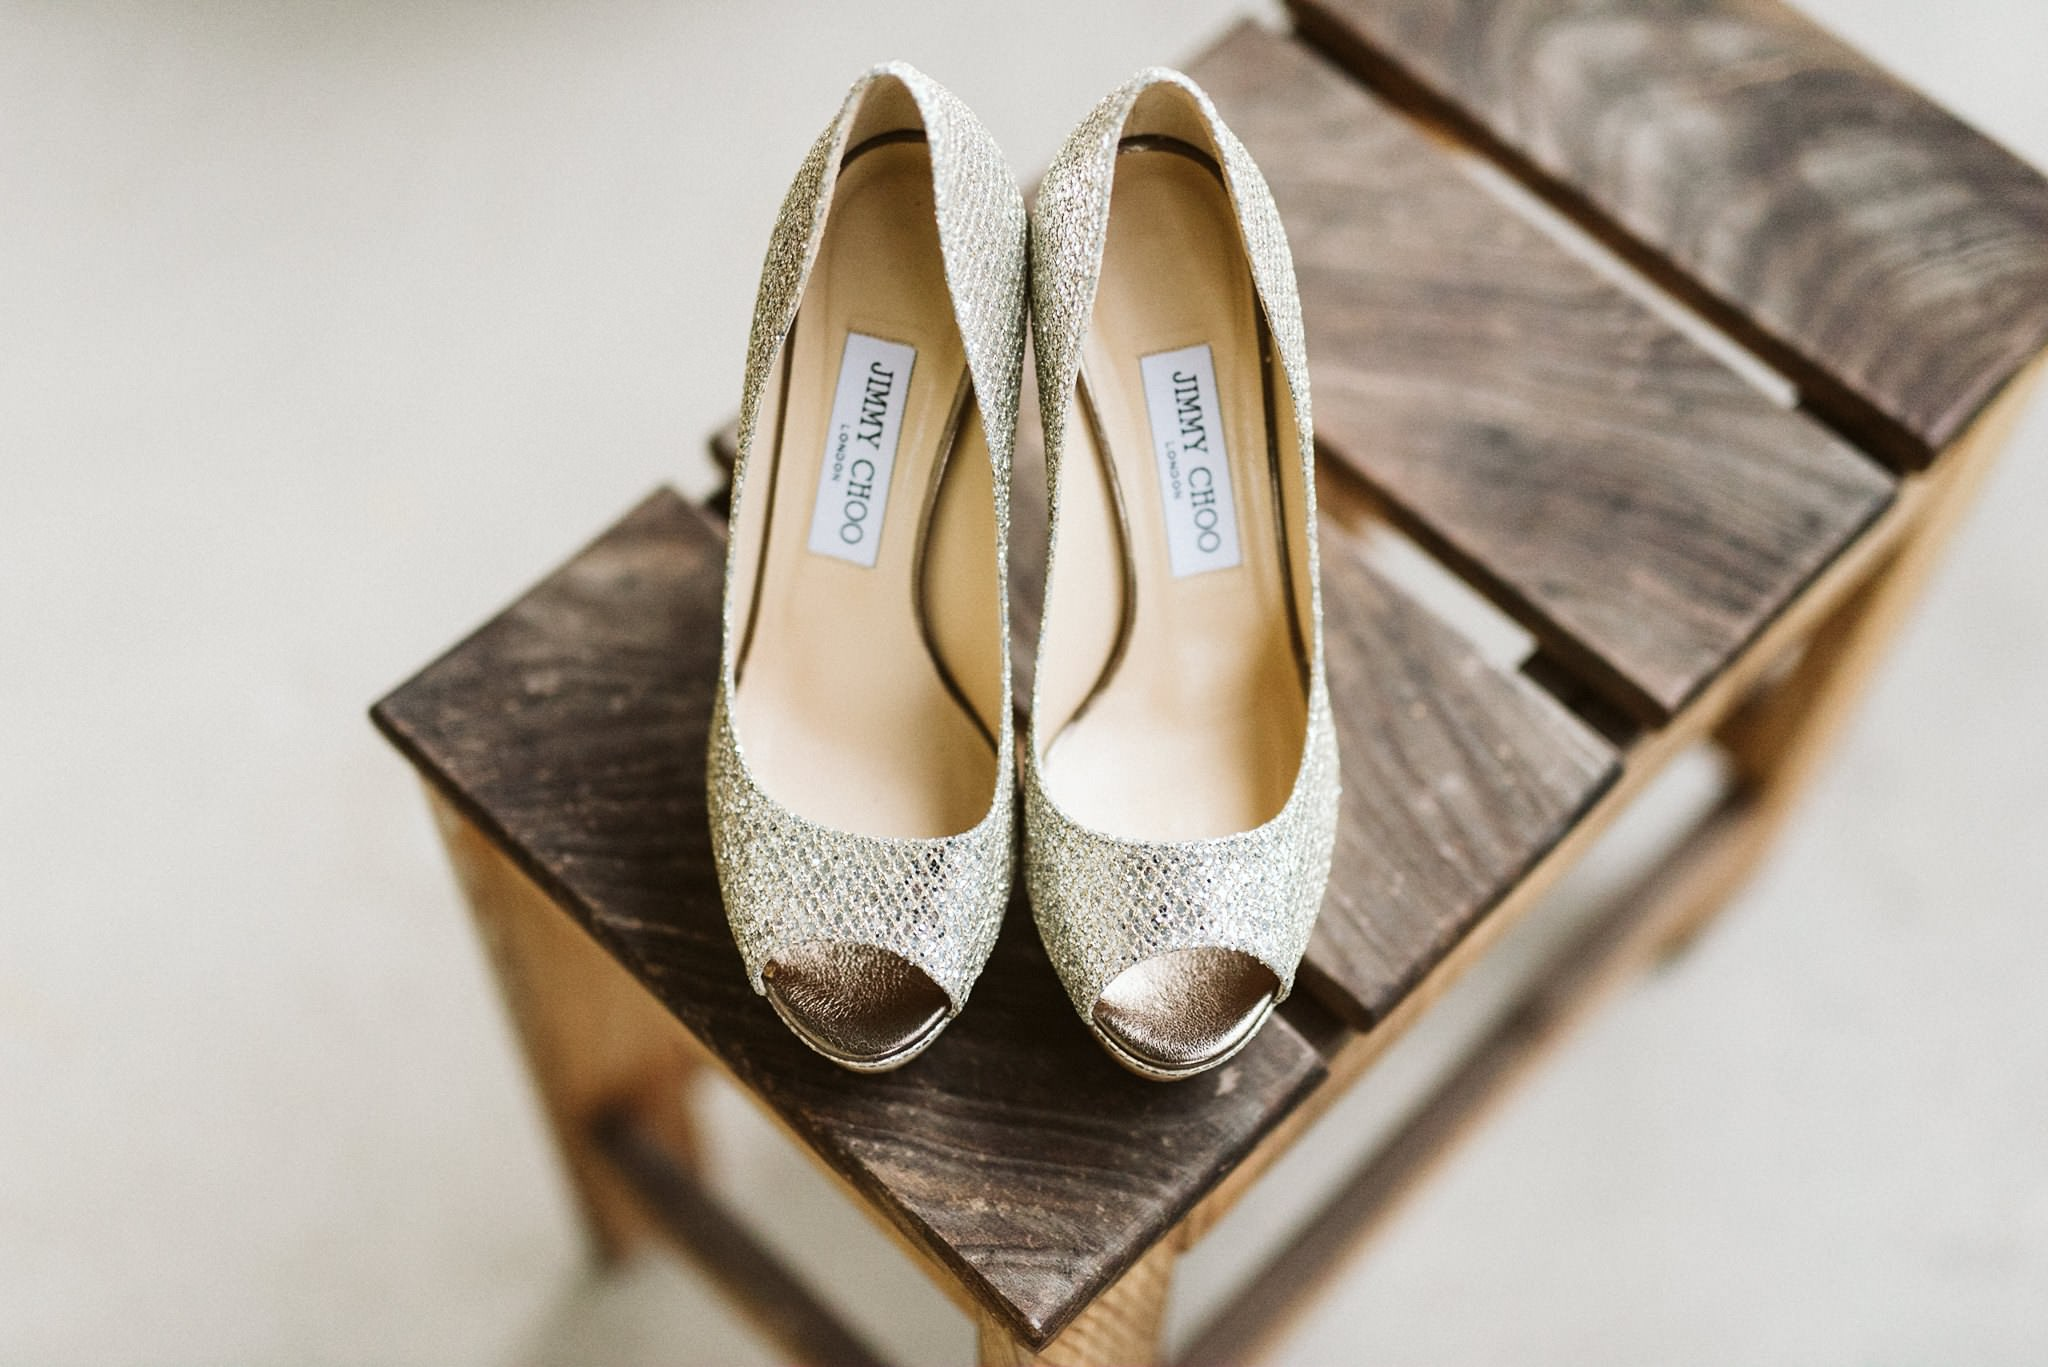 Jimmy Choo Bride Shoes